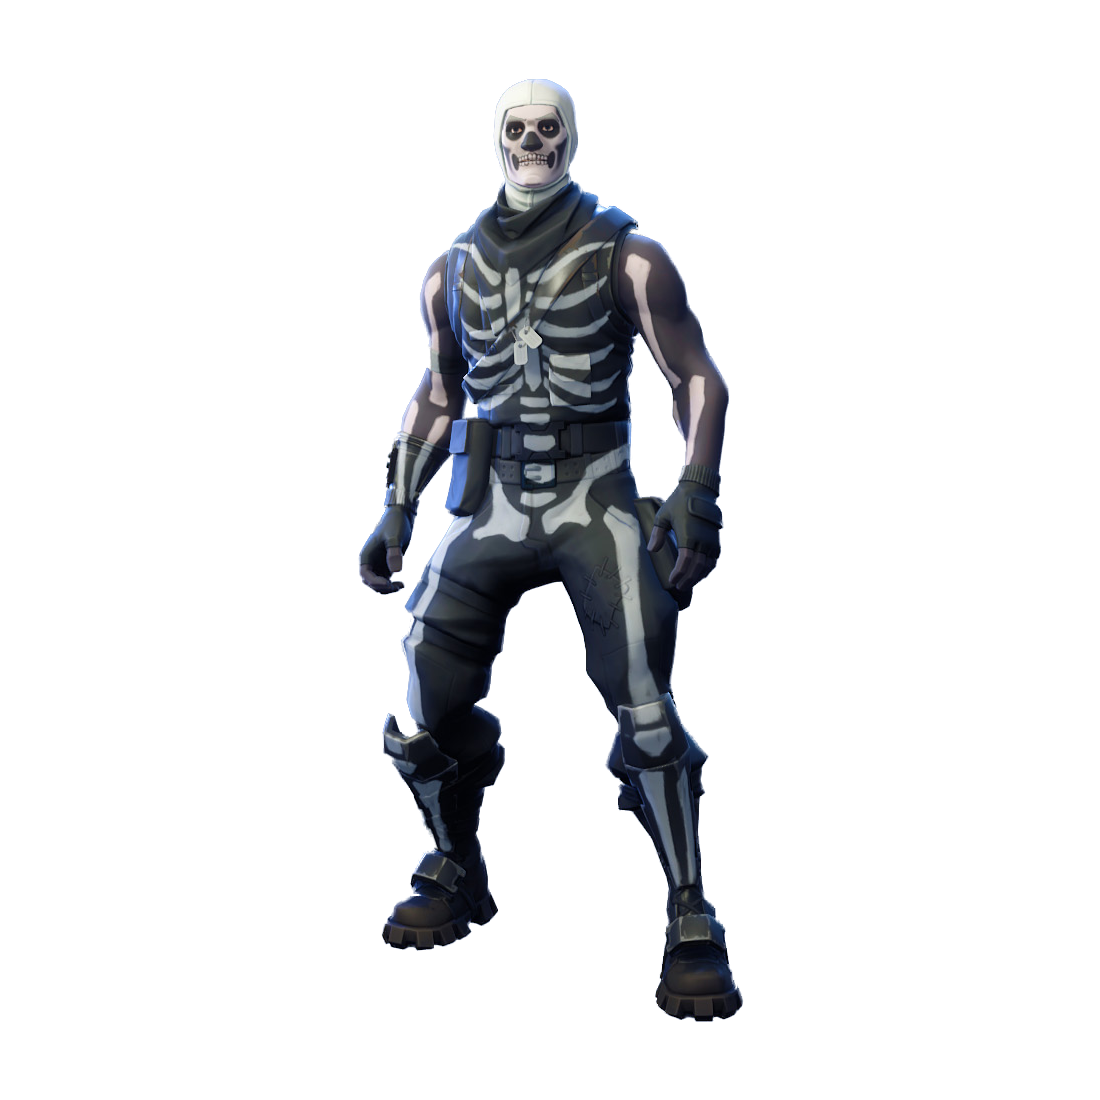 skull trooper png phone wallpaper